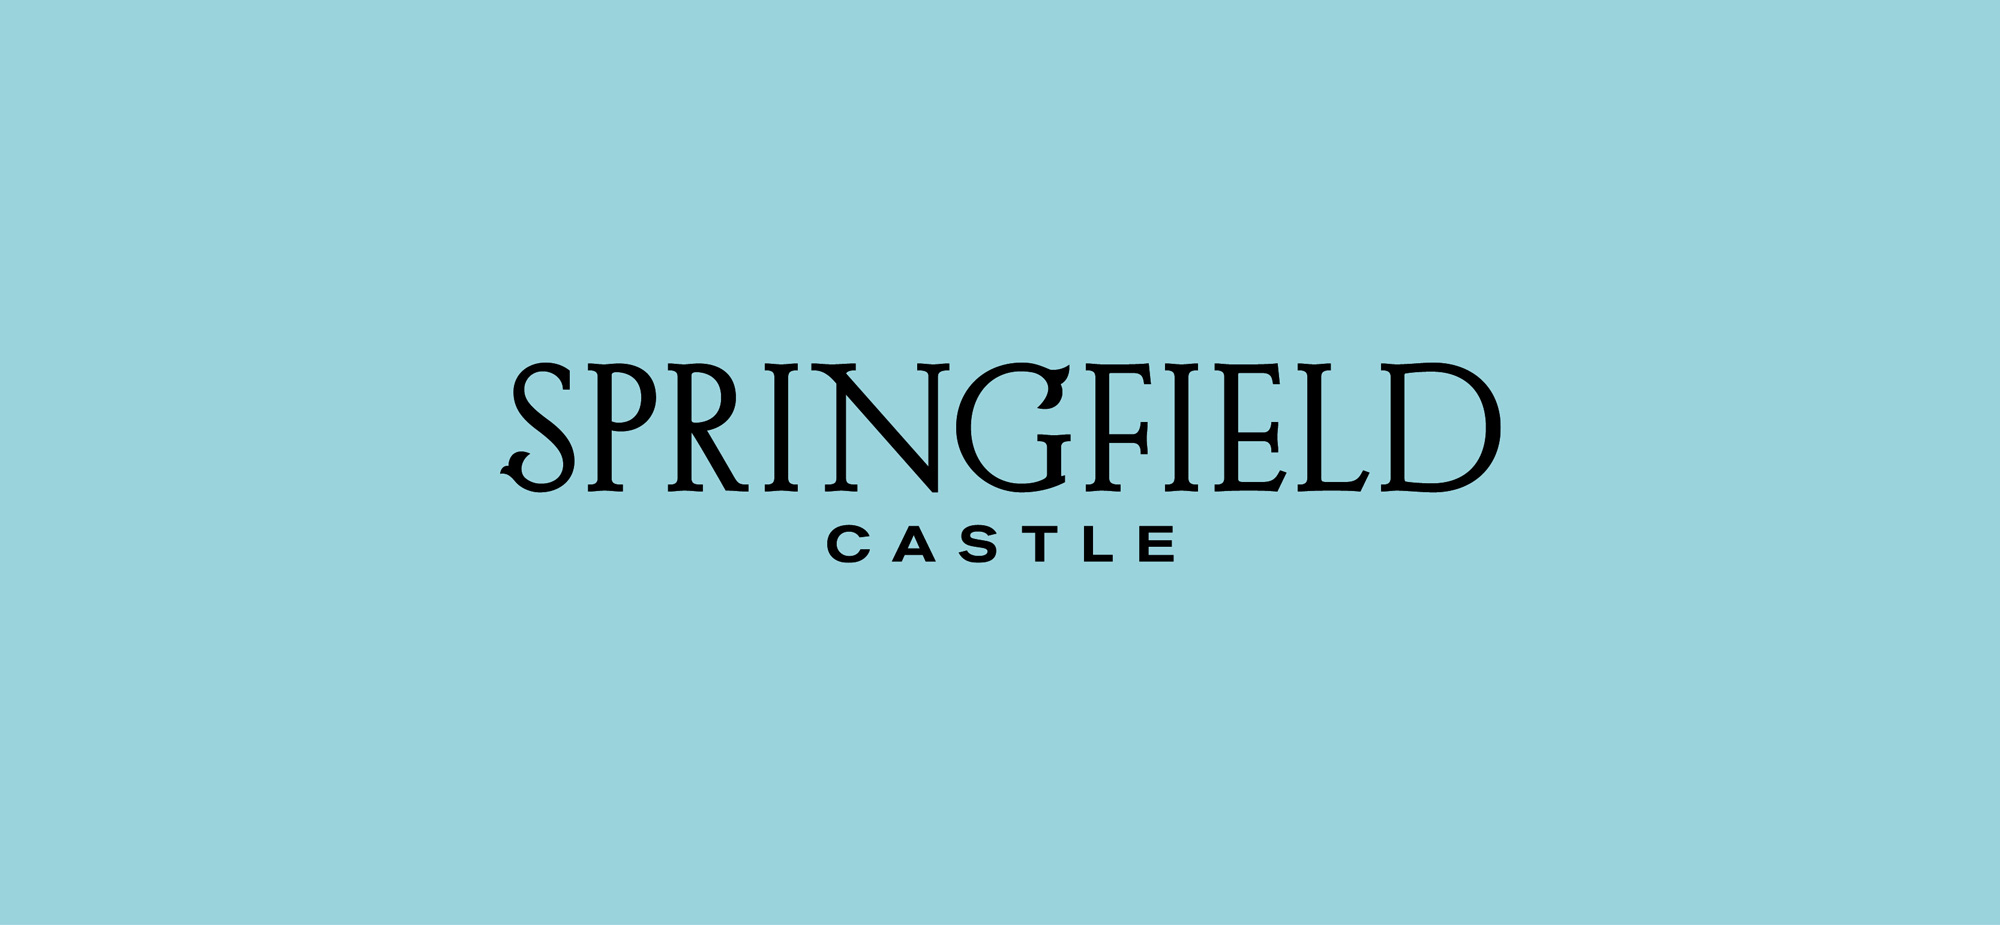 Springfield Castle Brand Development